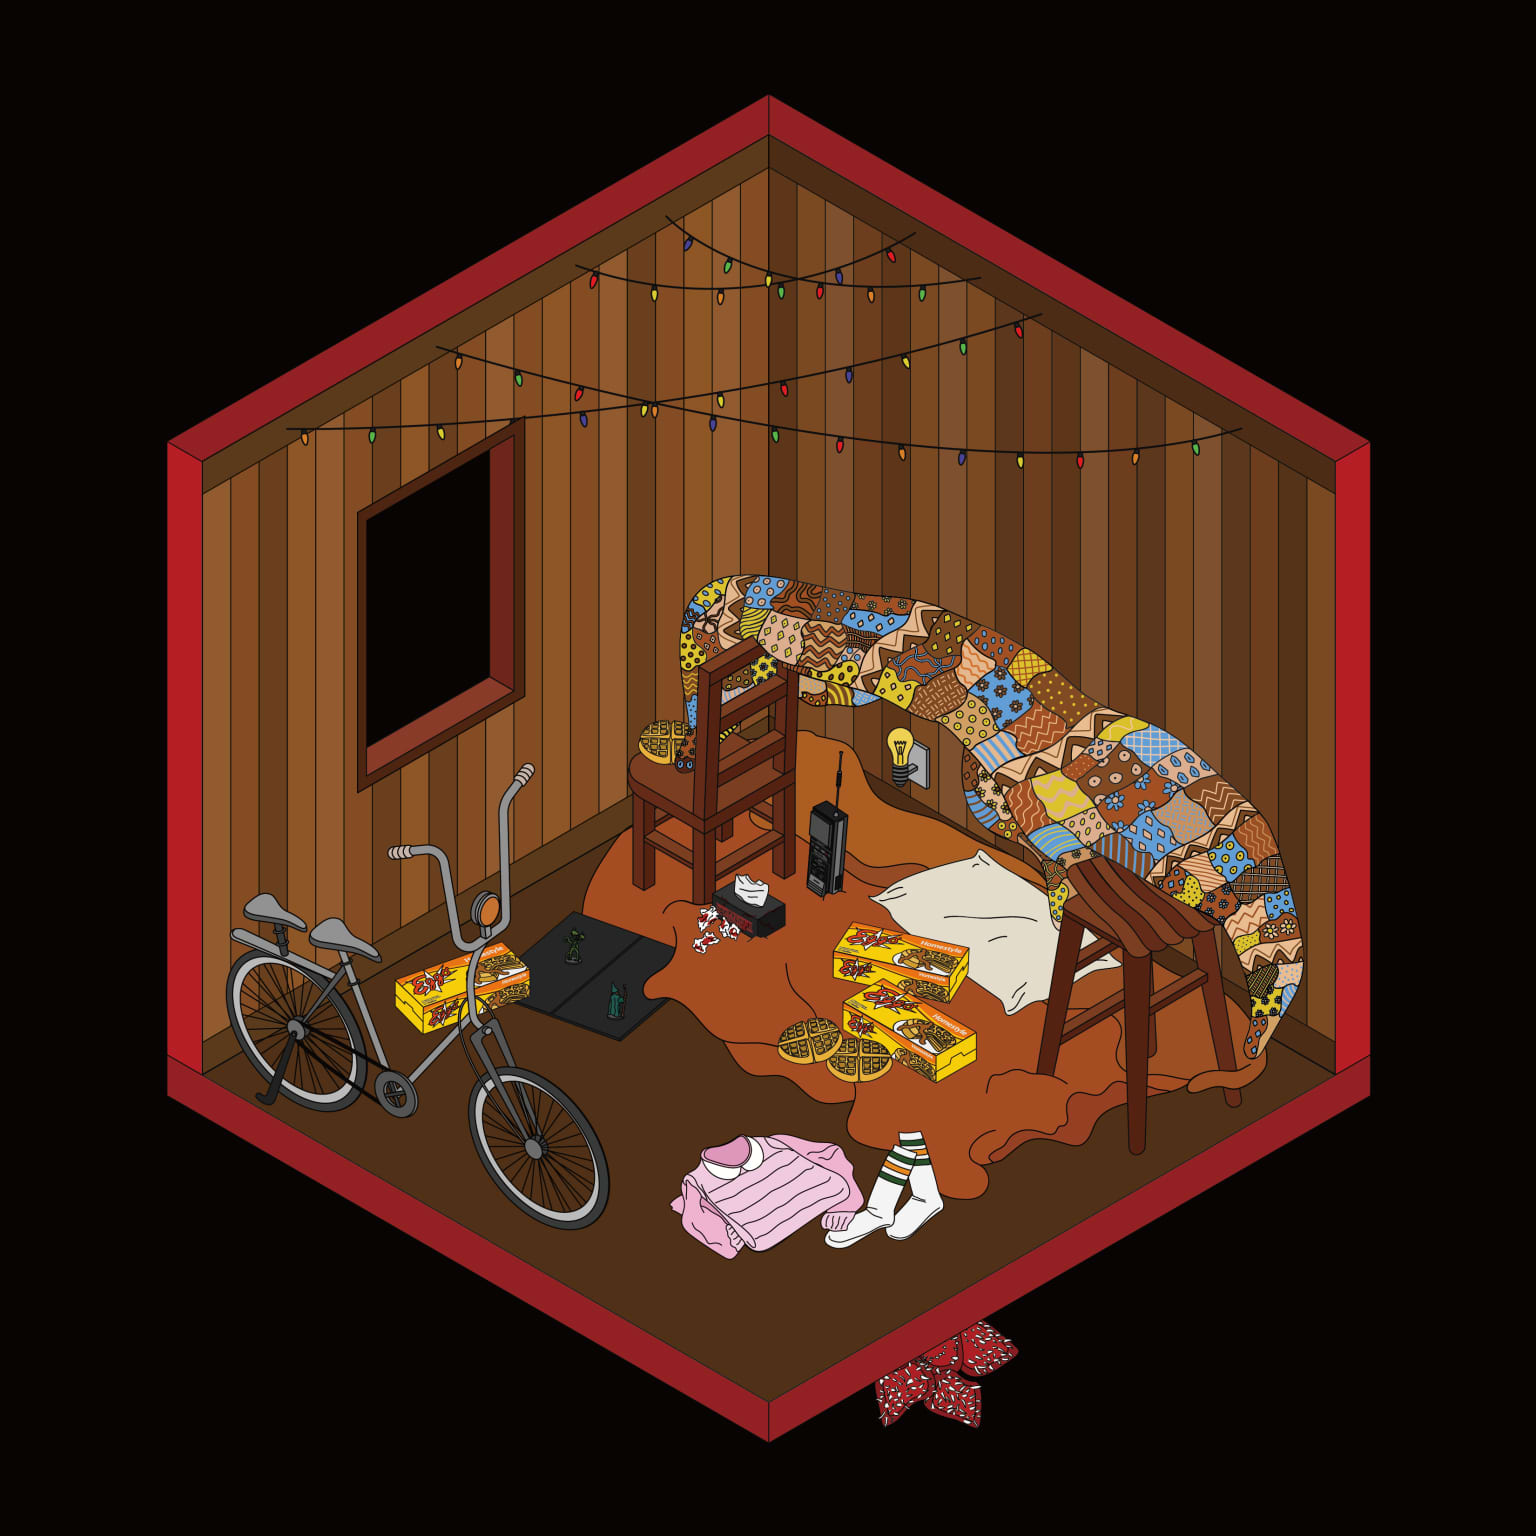 ROOM OF